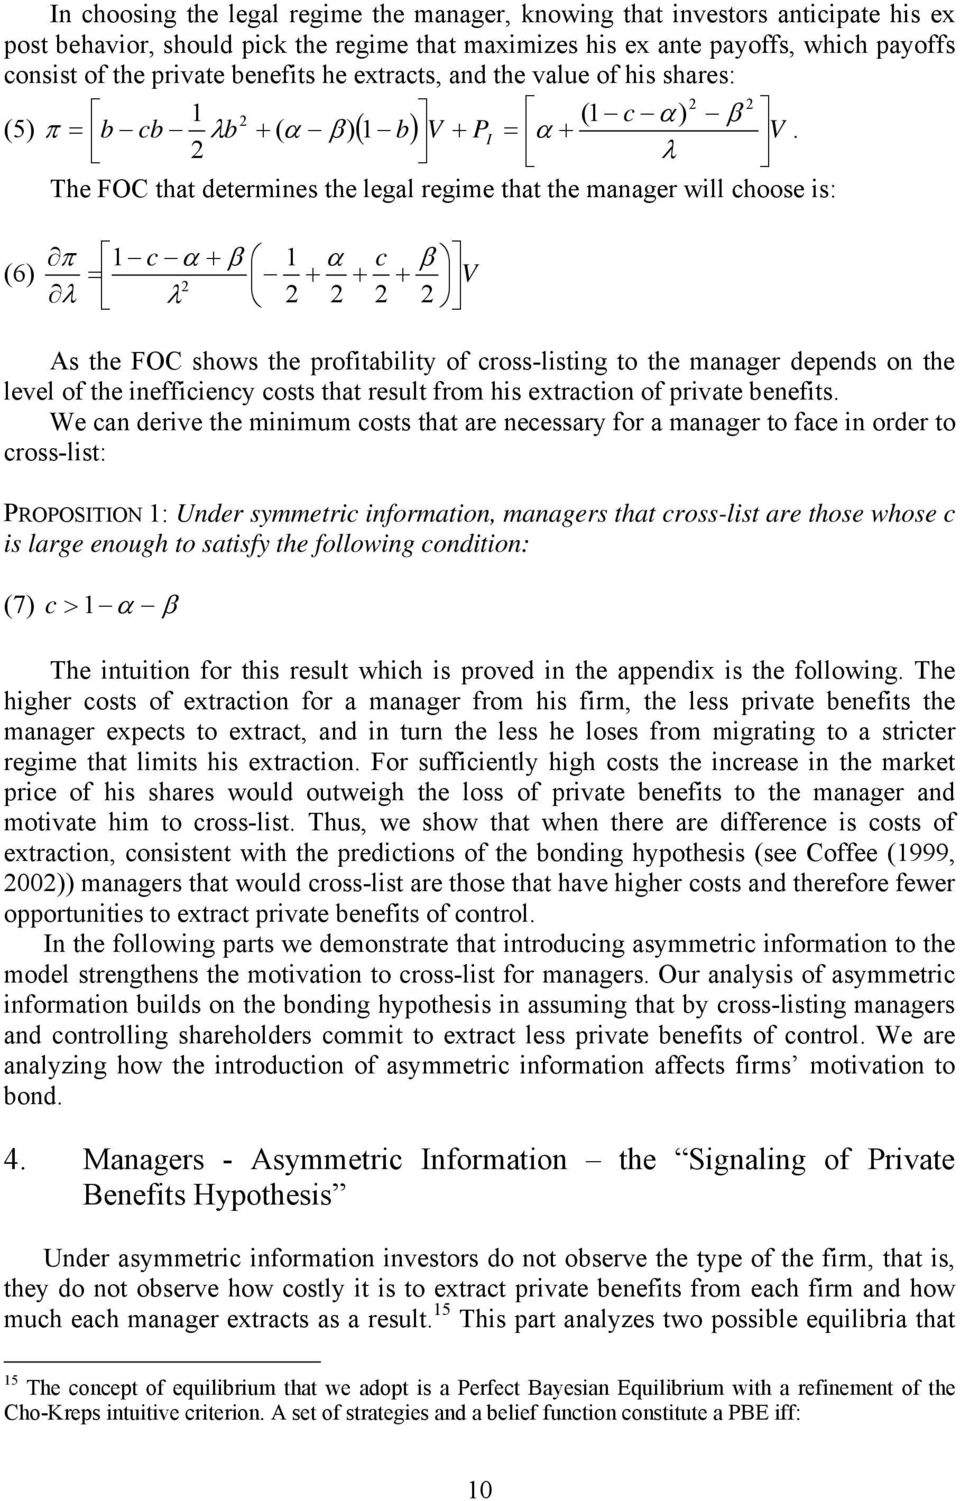 The FOC that determines the legal regime that the manager will hoose is: π (6 = As the FOC shows the profitability of ross-listing to the manager depends on the level of the ineffiieny osts that